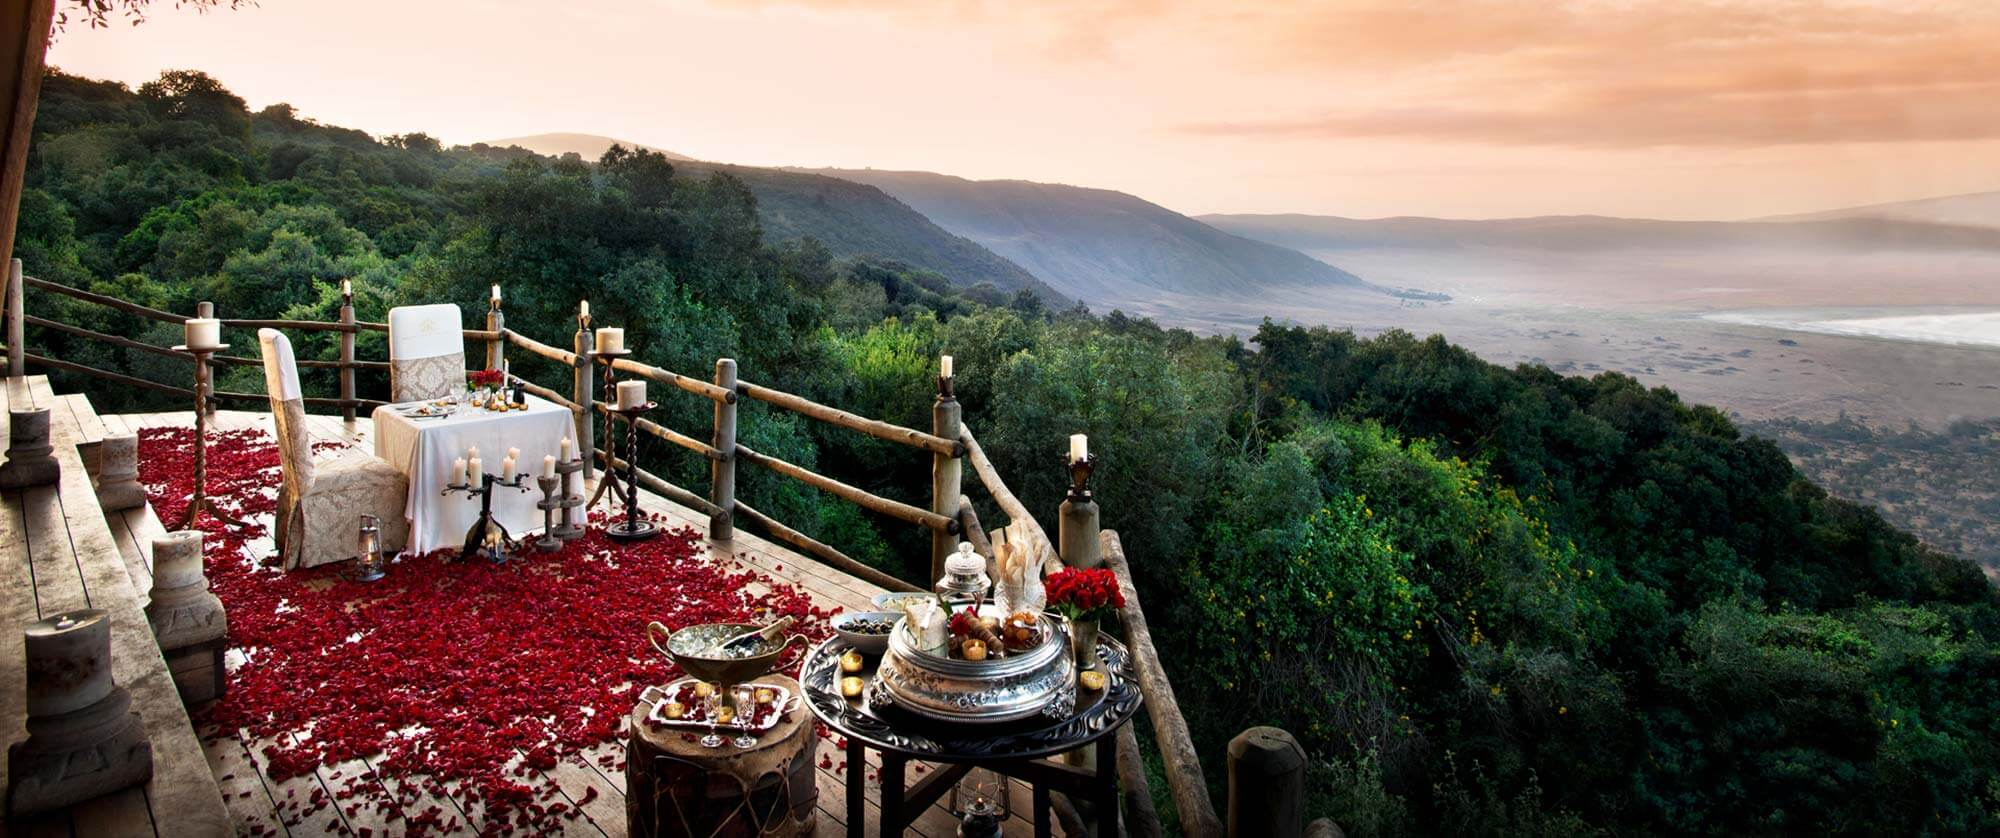 Ngorongoro Crater Lodge Views